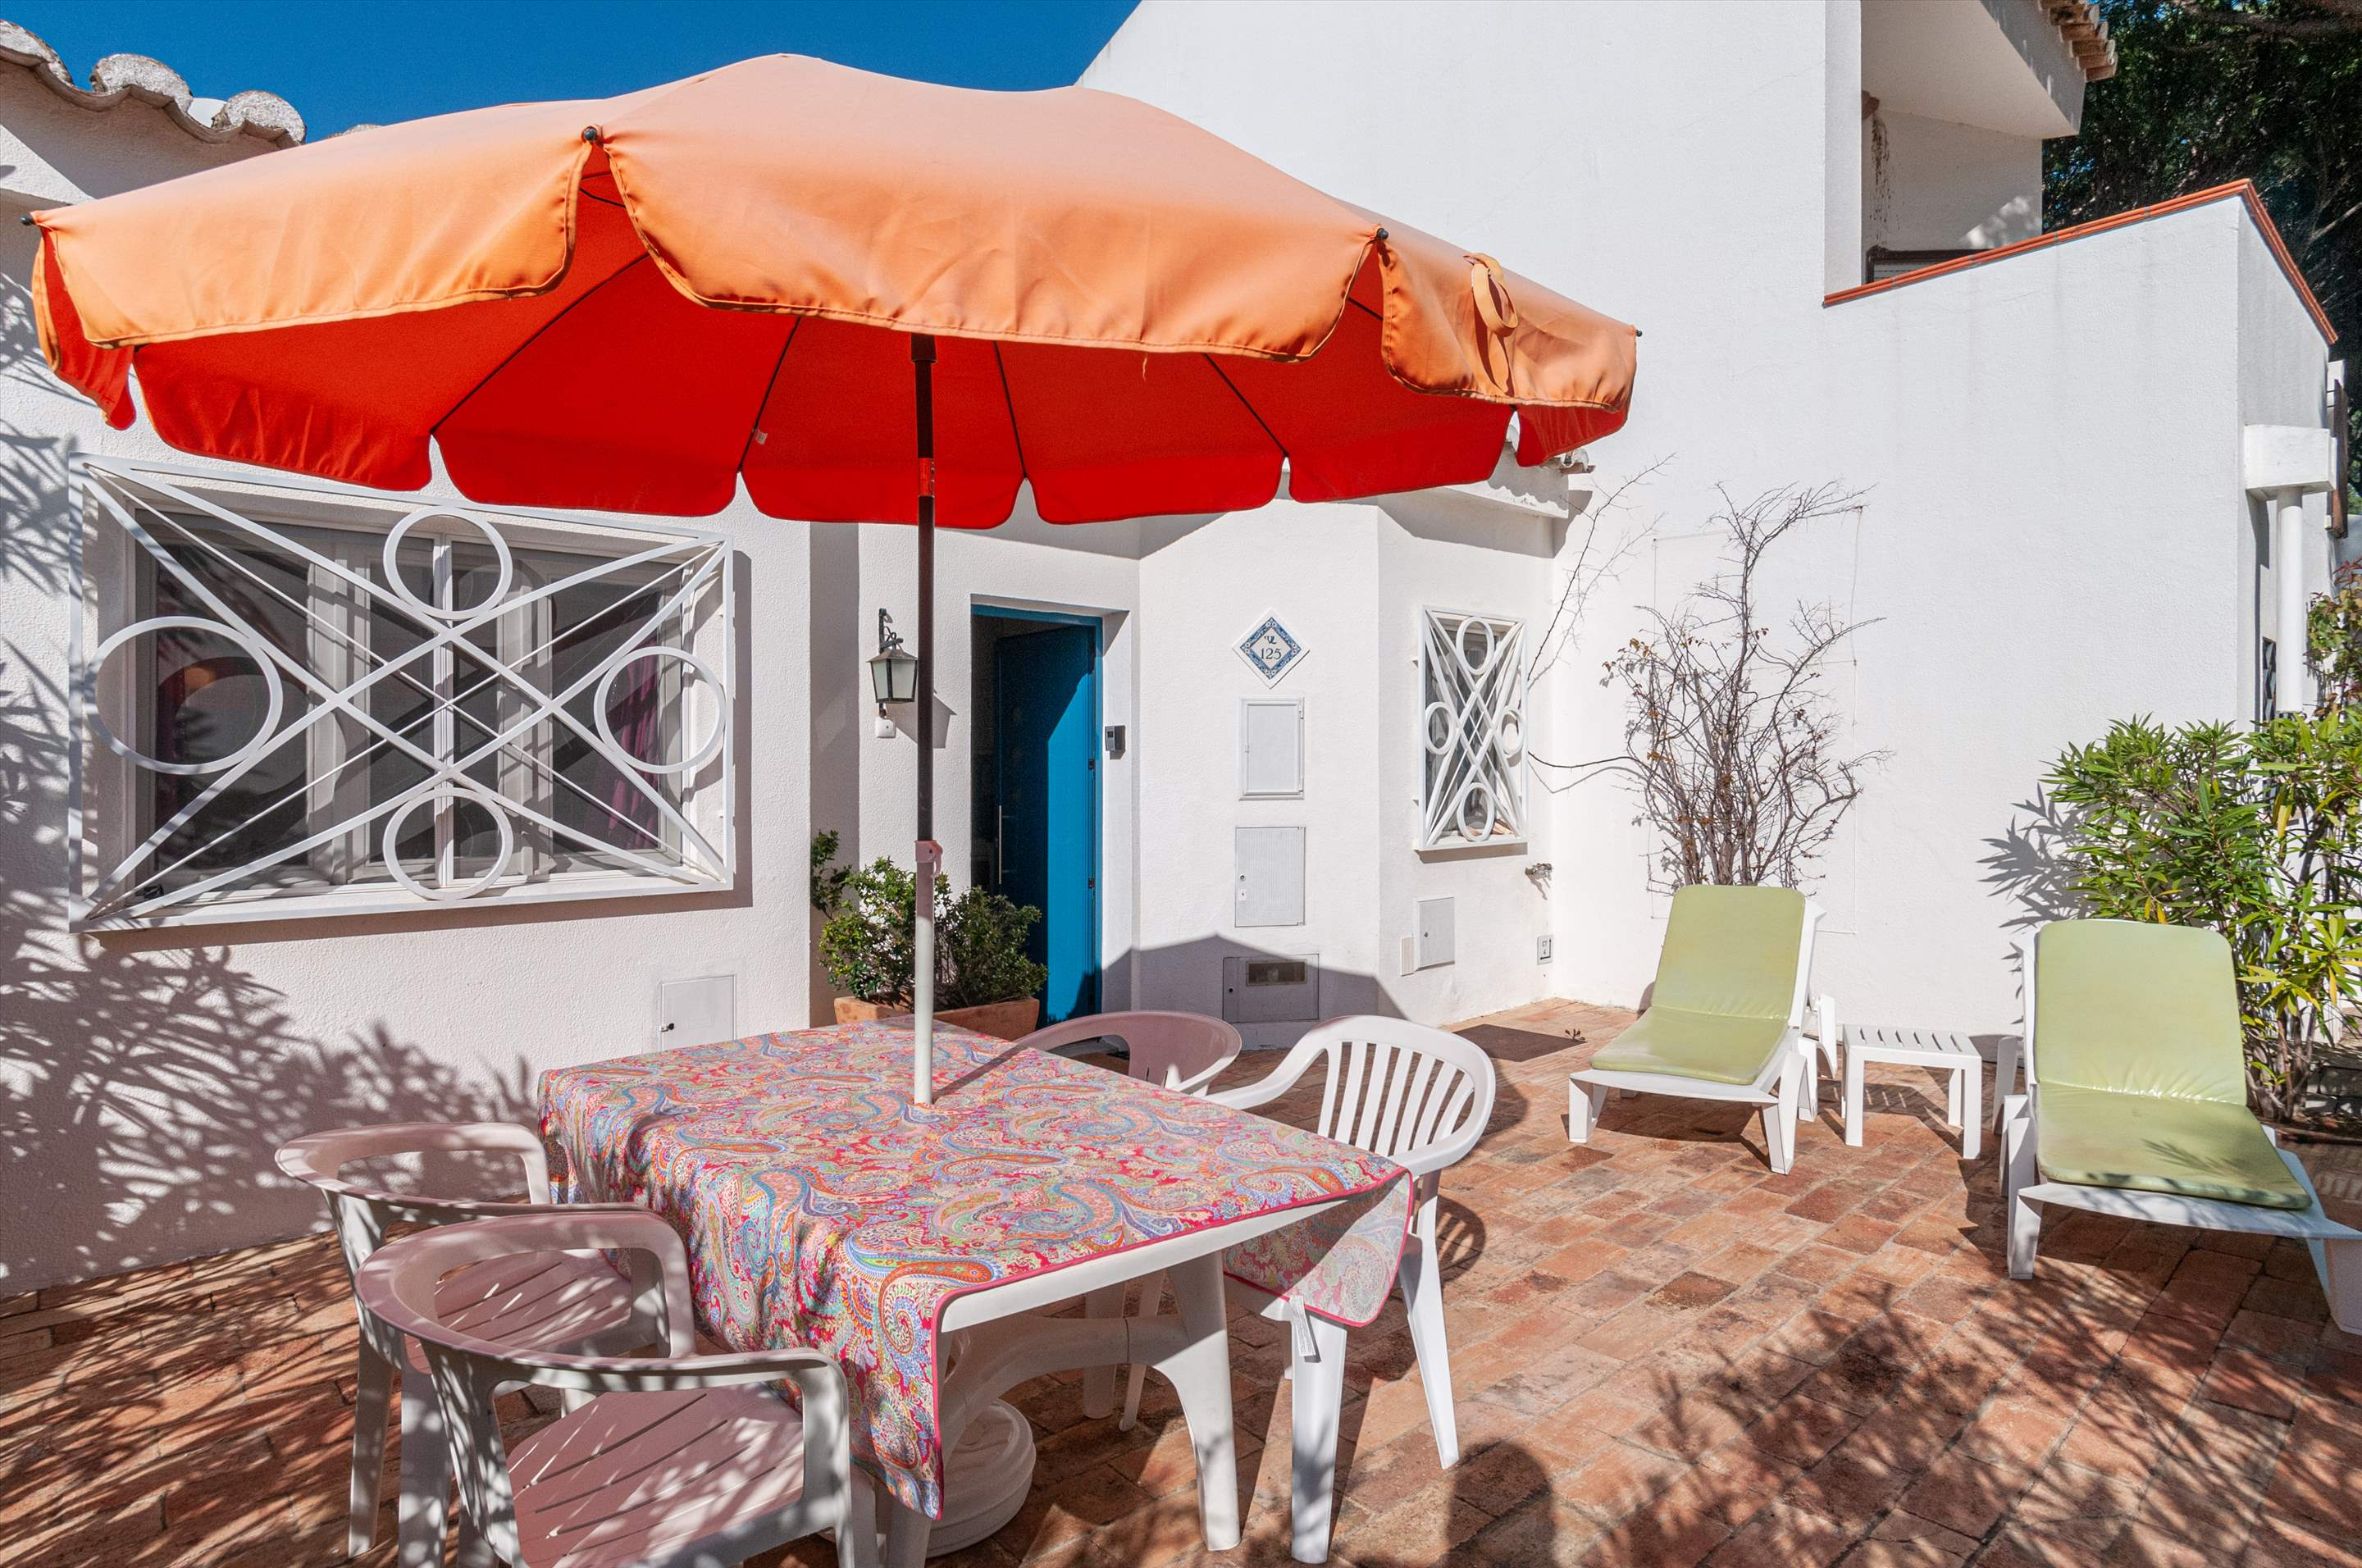 Villa Townhouse 2 Bedroom, 2 bedroom villa in Vale do Lobo, Algarve Photo #2